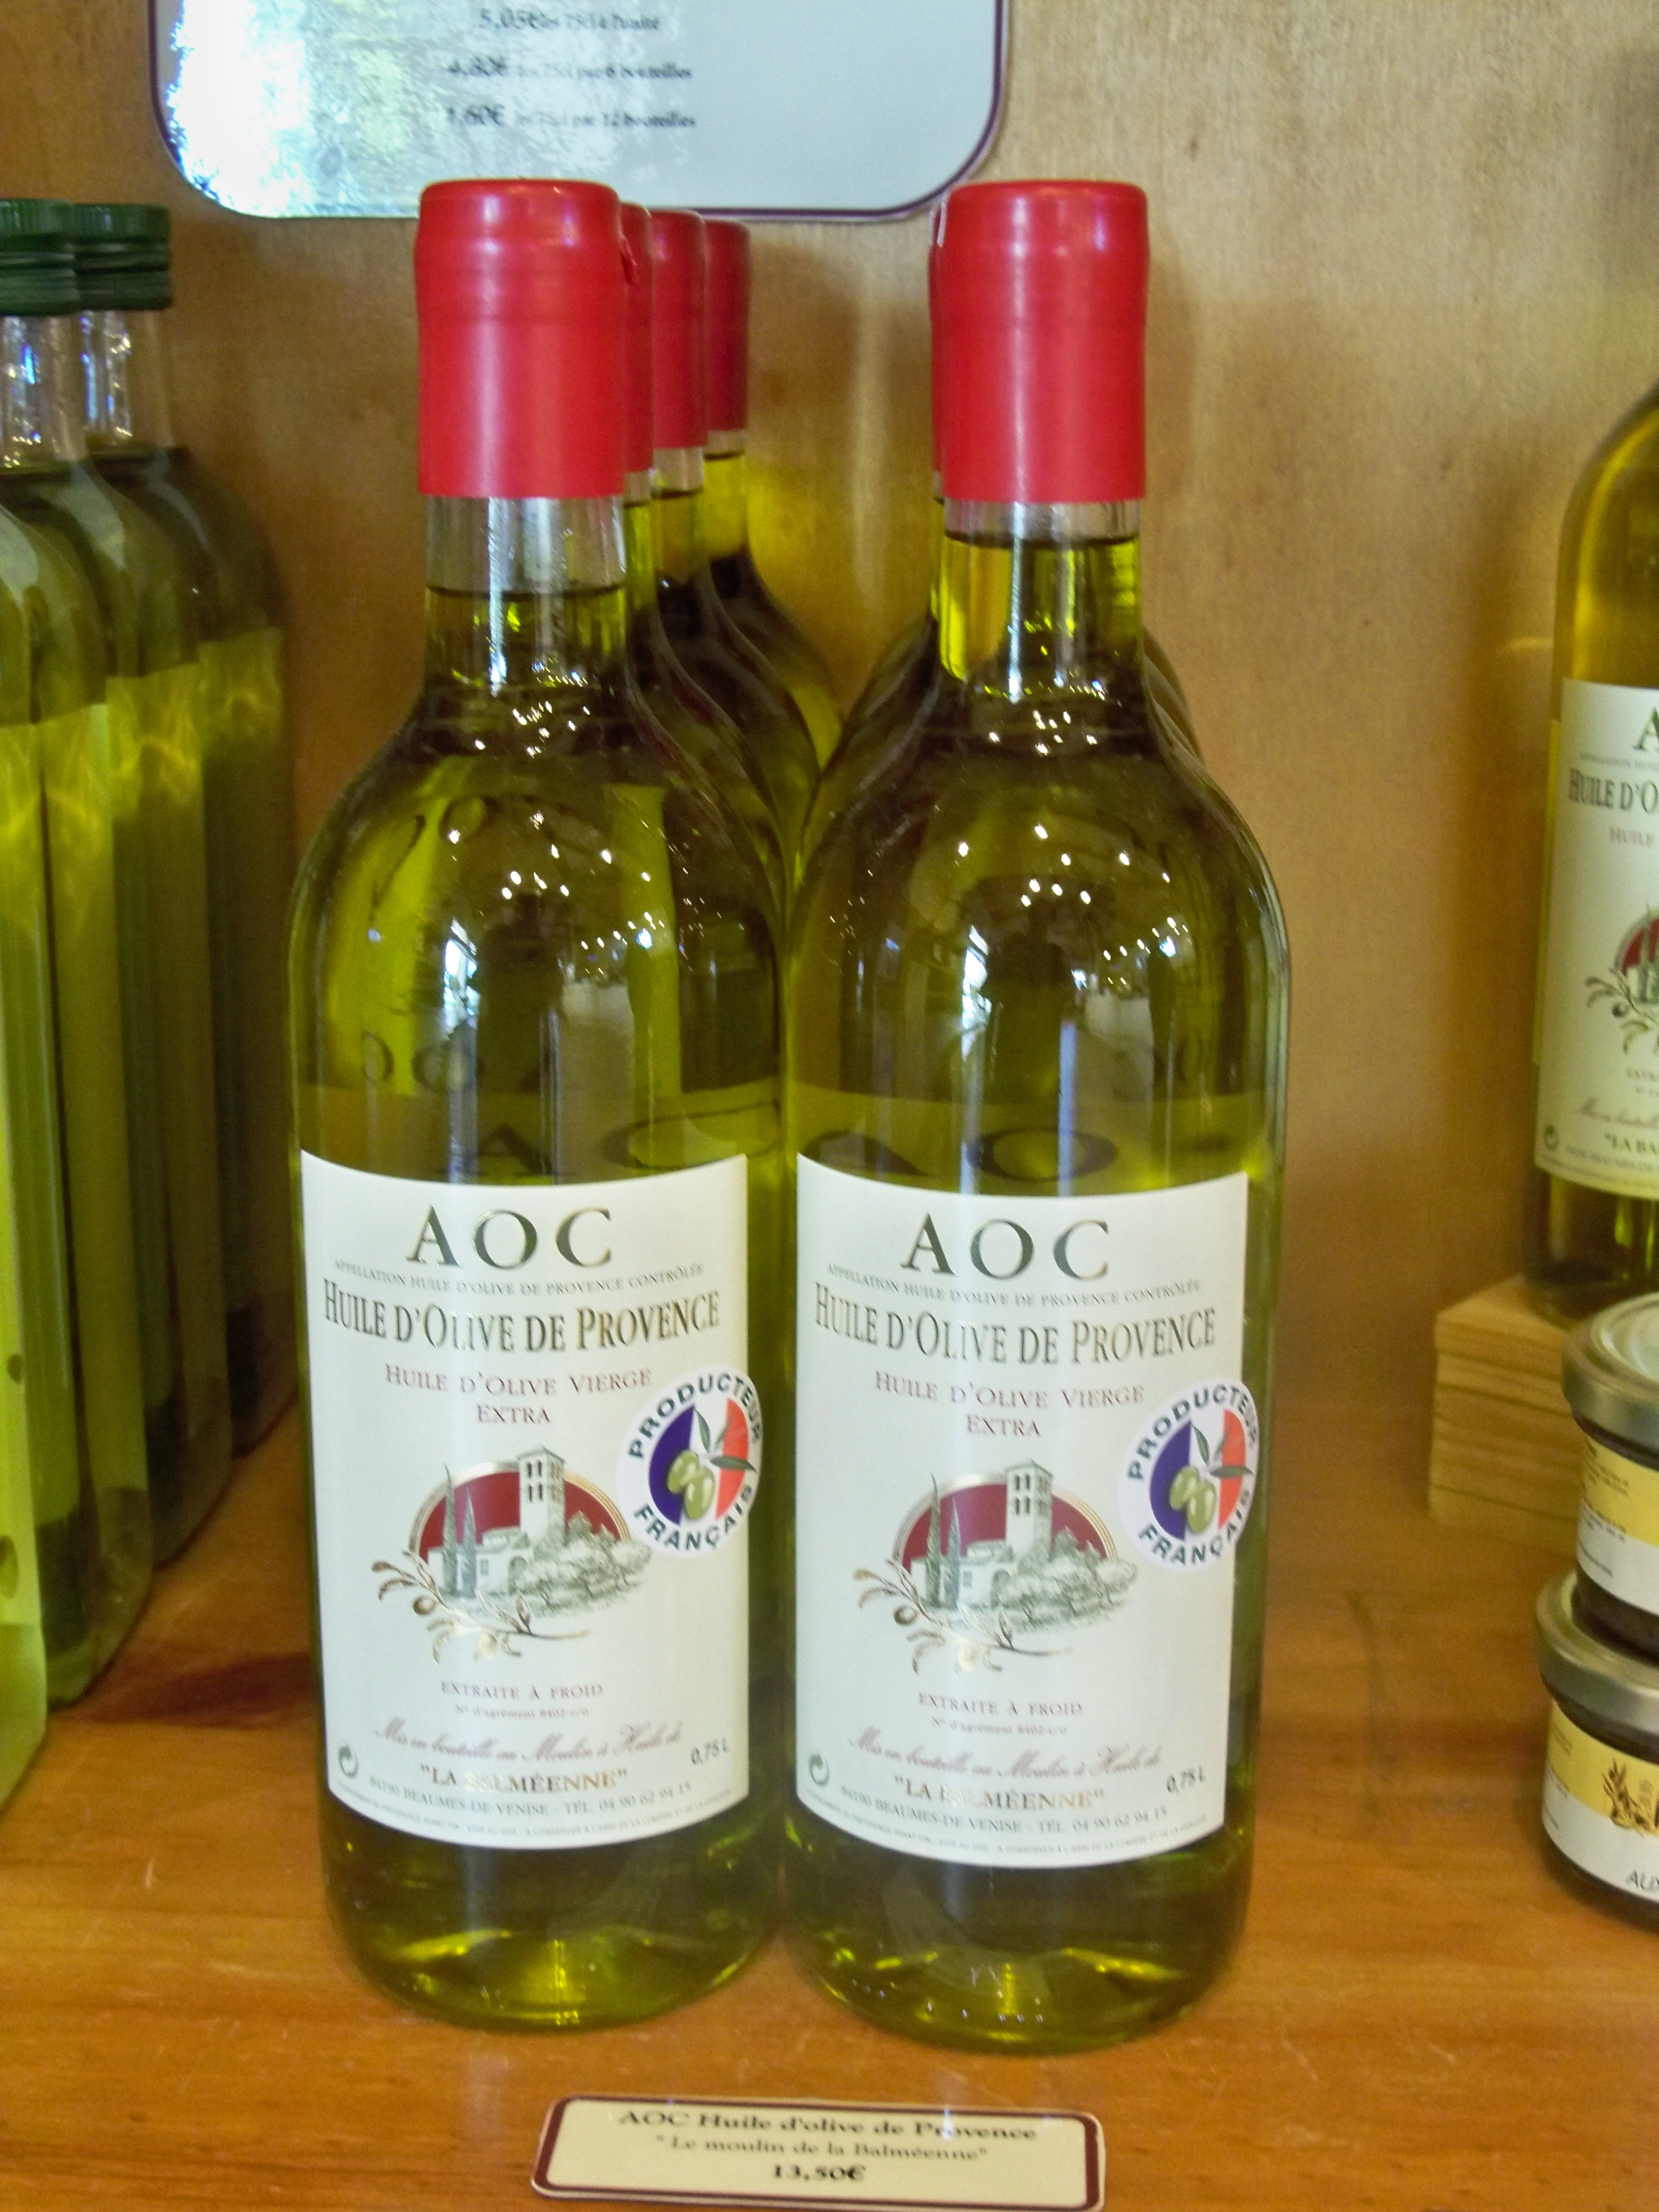 Meteo agricole cassis trendy yum with meteo agricole for Huile d olive salon de provence